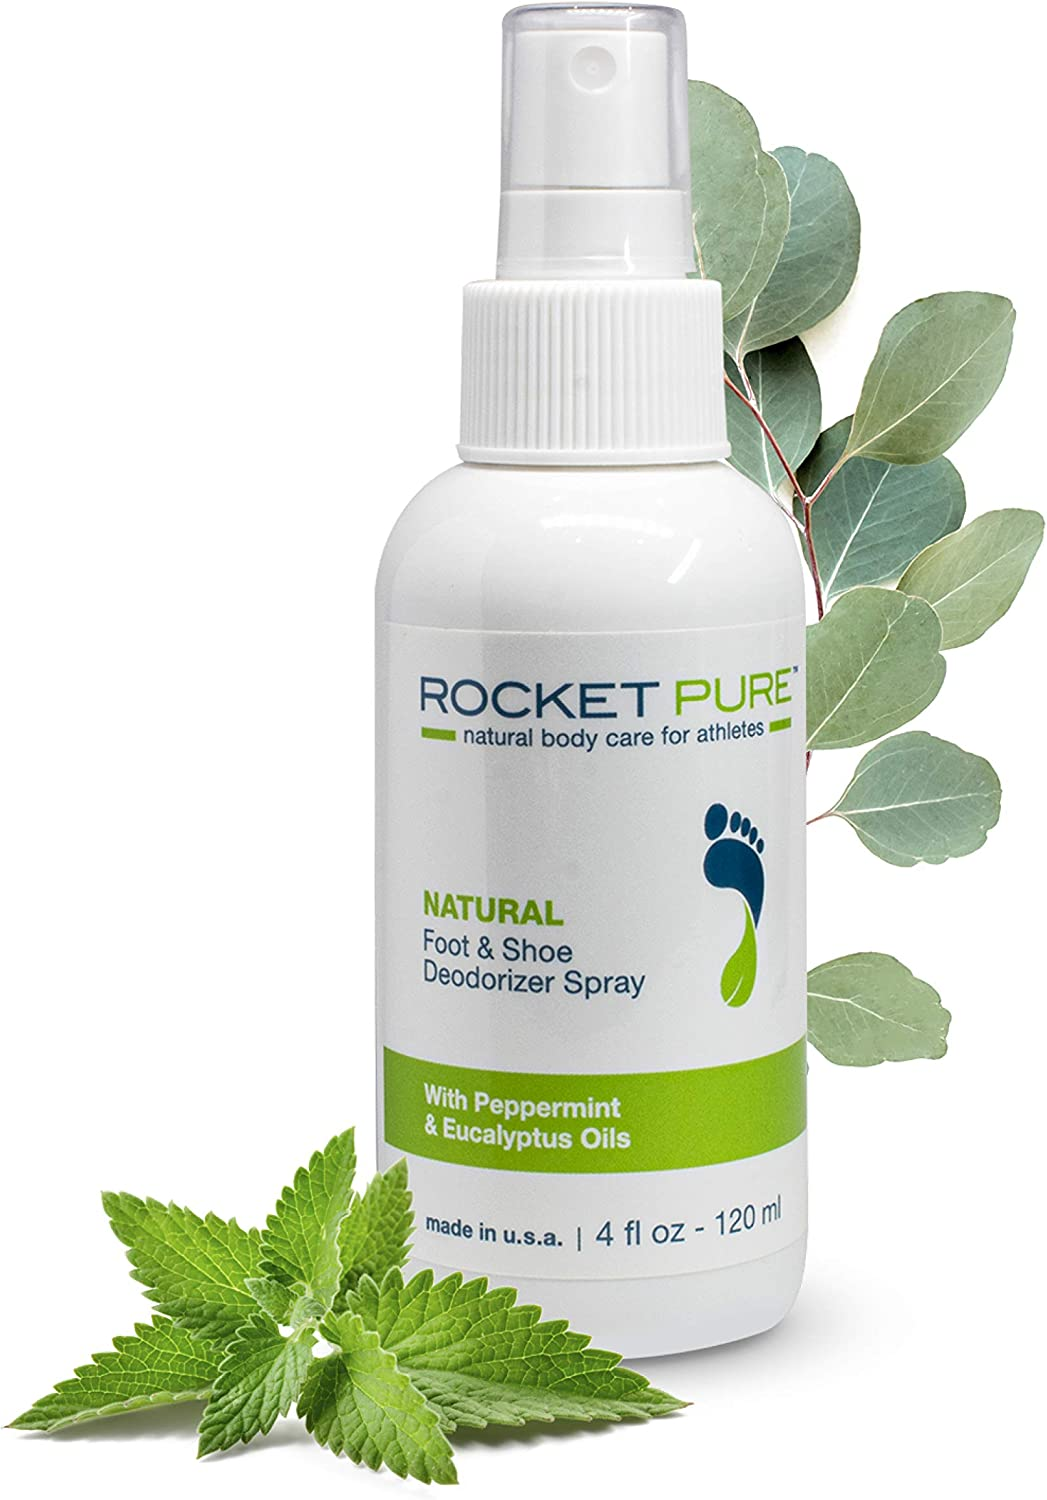 Natural Mint Shoe Deodorizer, Foot Deodorant Spray. Fights Odor, Stink Caused by Bacteria. Spray Freshens Better Than Messy Powders, Antiperspirants, Insoles, Sneaker Balls. Use on Feet or Shoes.: Sports & Outdoors